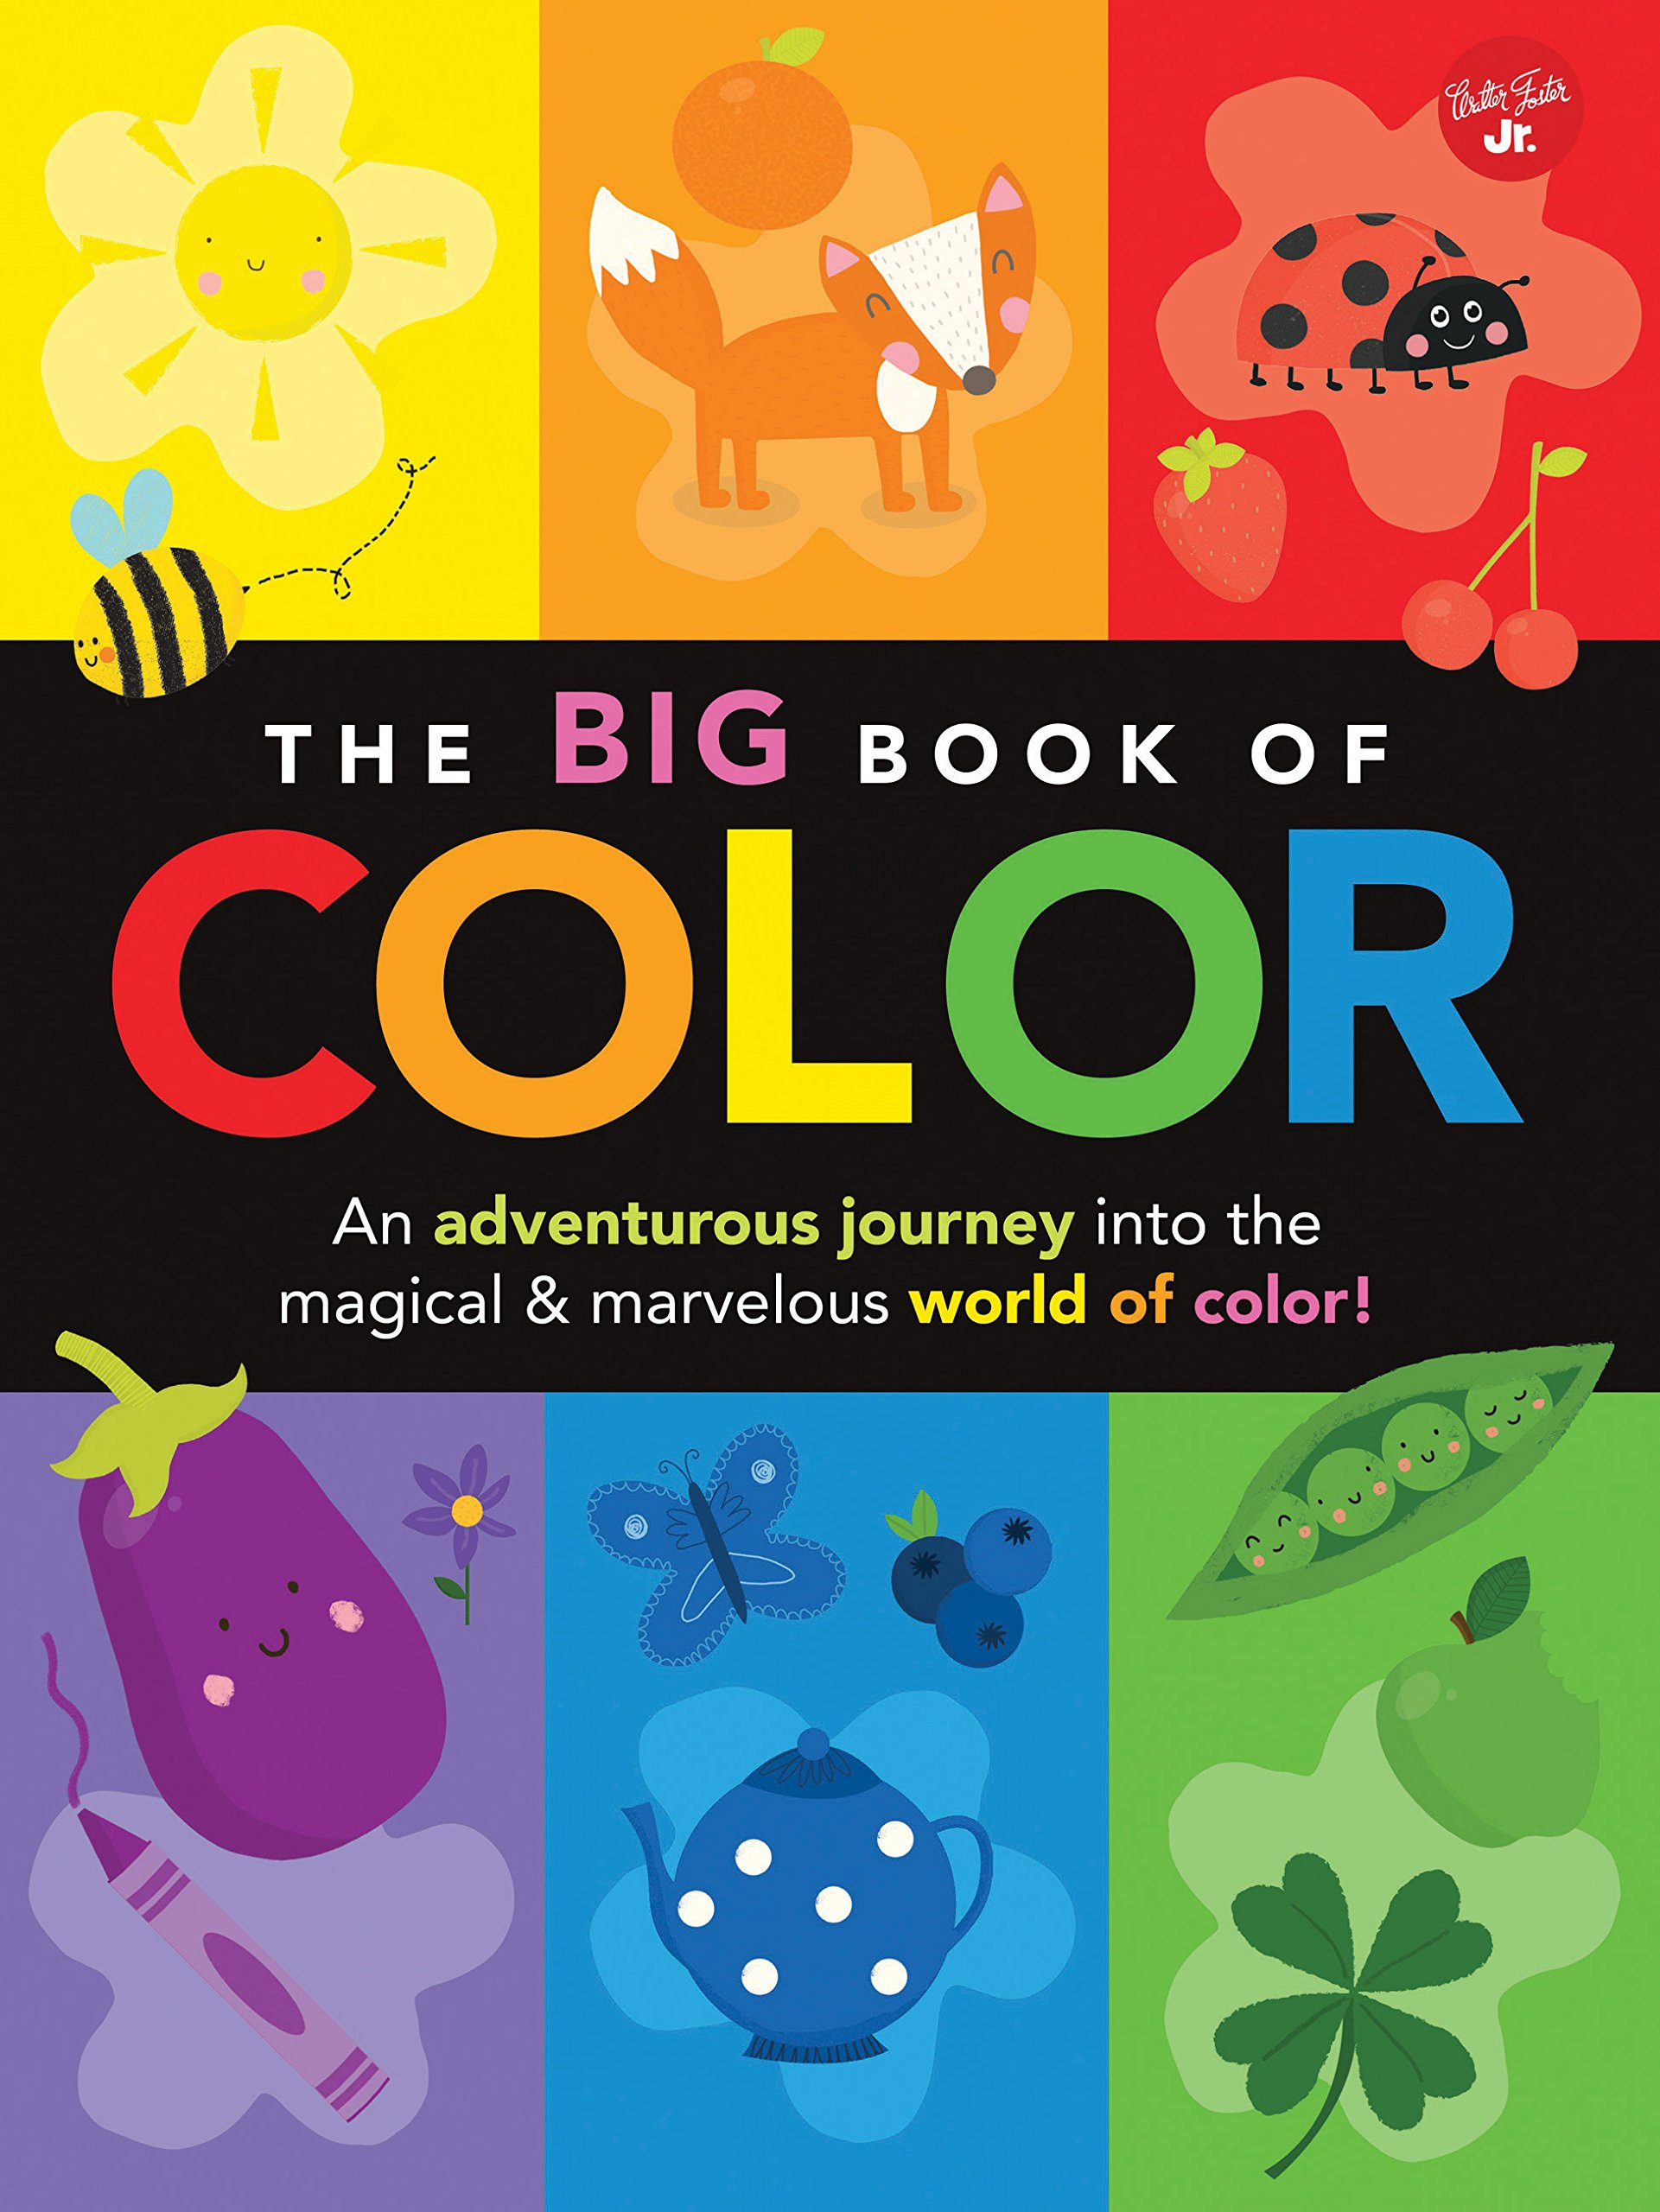 The Big Book of Color: An adventurous journey into the magical & marvelous world of color! (Big Book Series) pdf epub